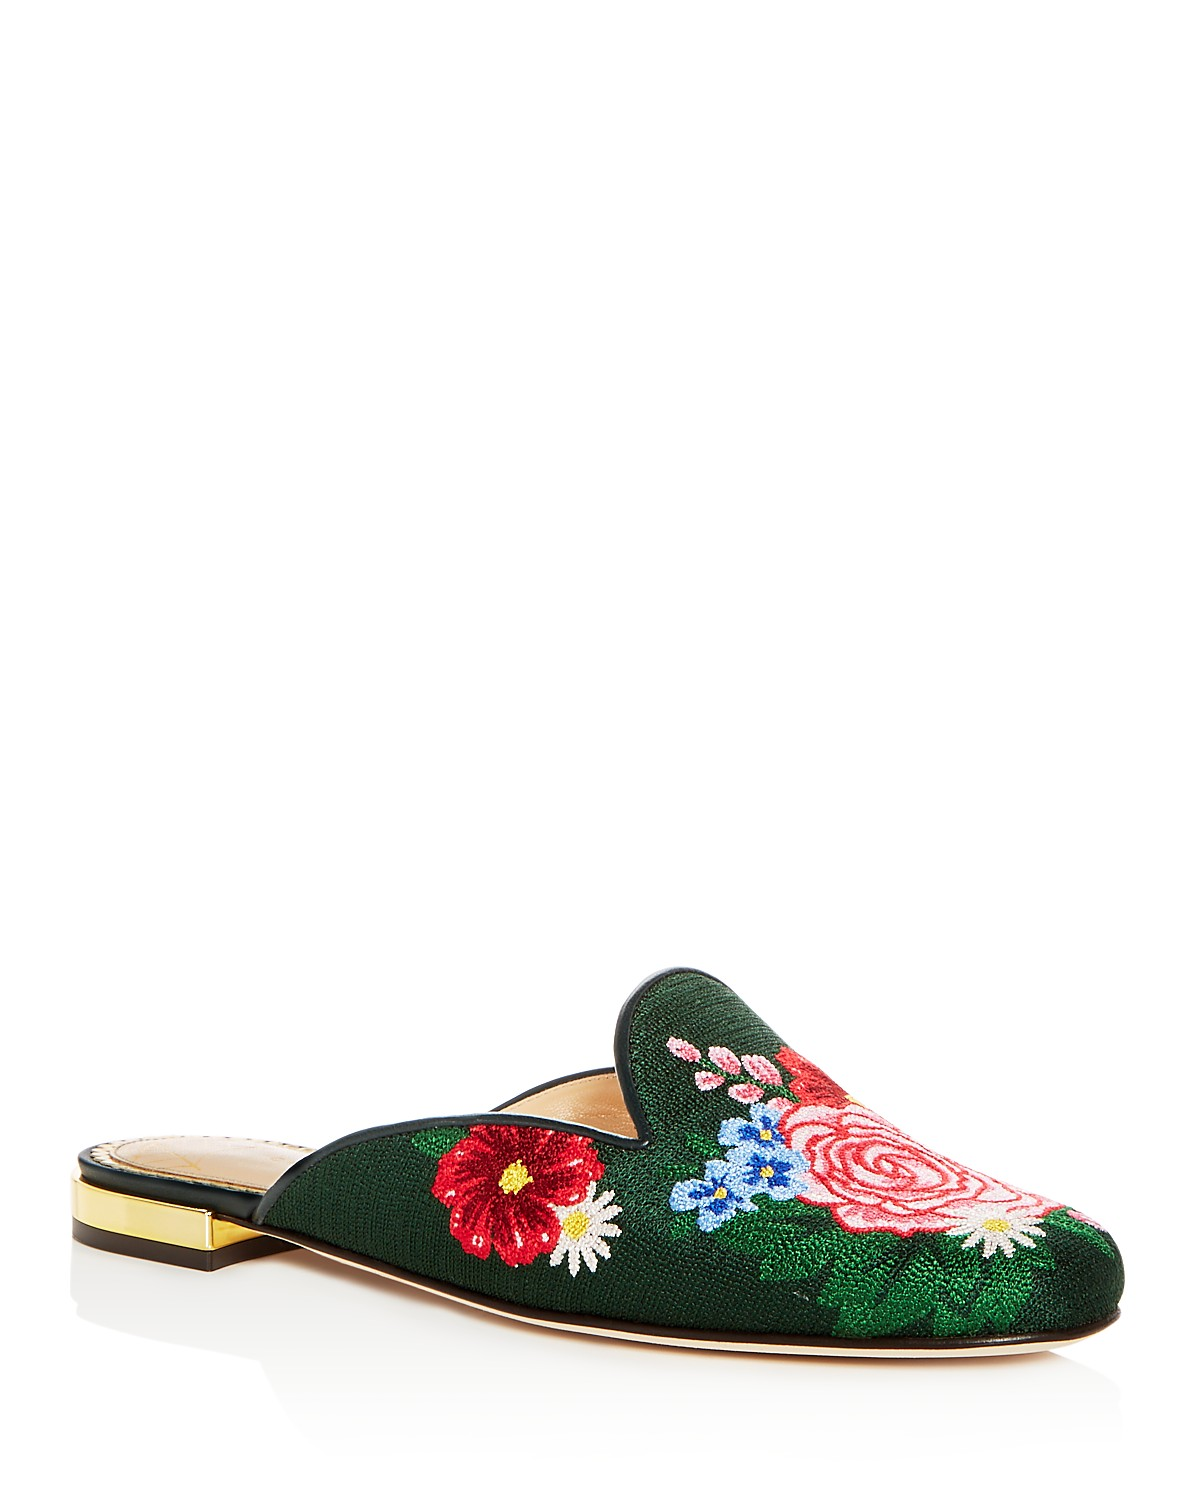 Charlotte Olympia Women's Rose Garden Embroidered Mules rNMrt